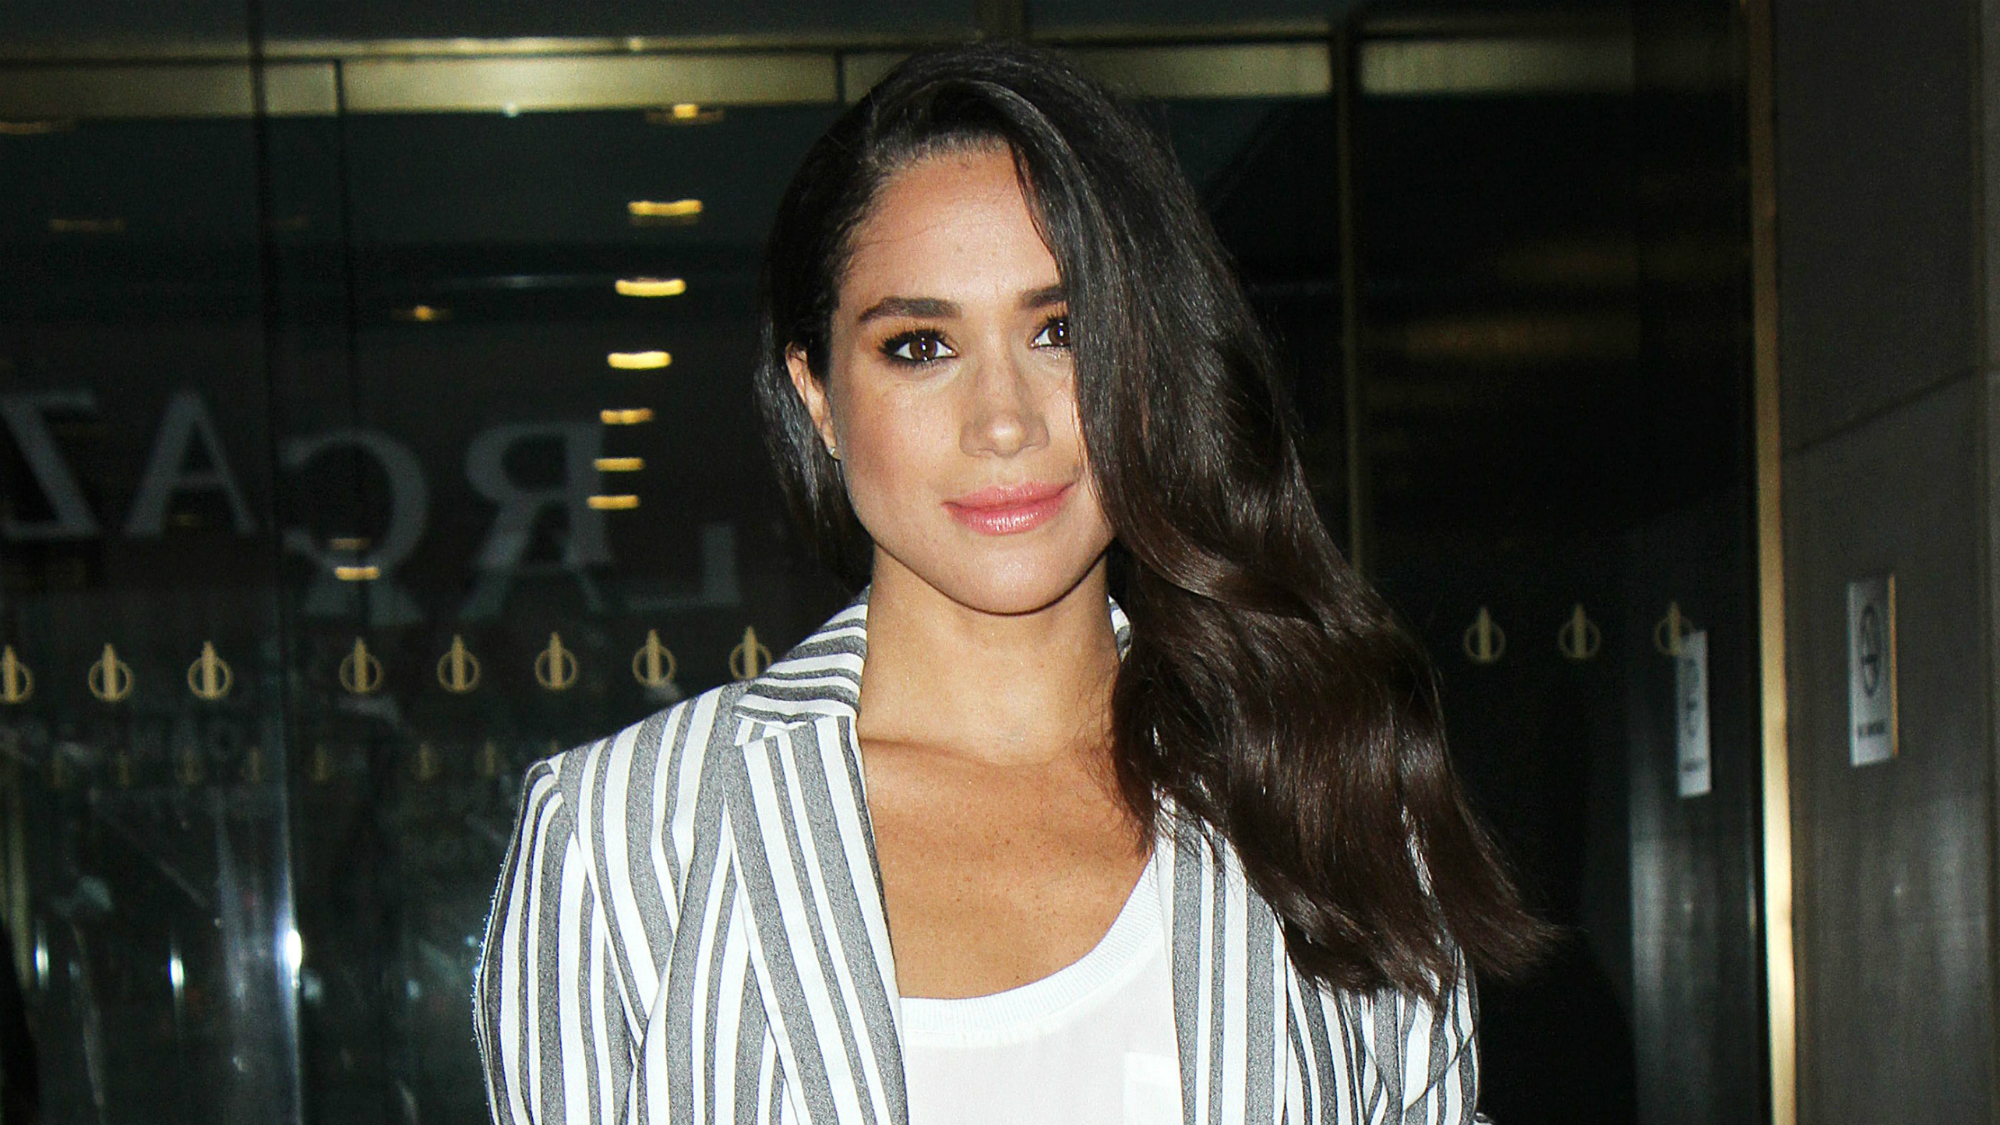 Meghan Markle's real name isn't actually Meghan and the internet can't handle it